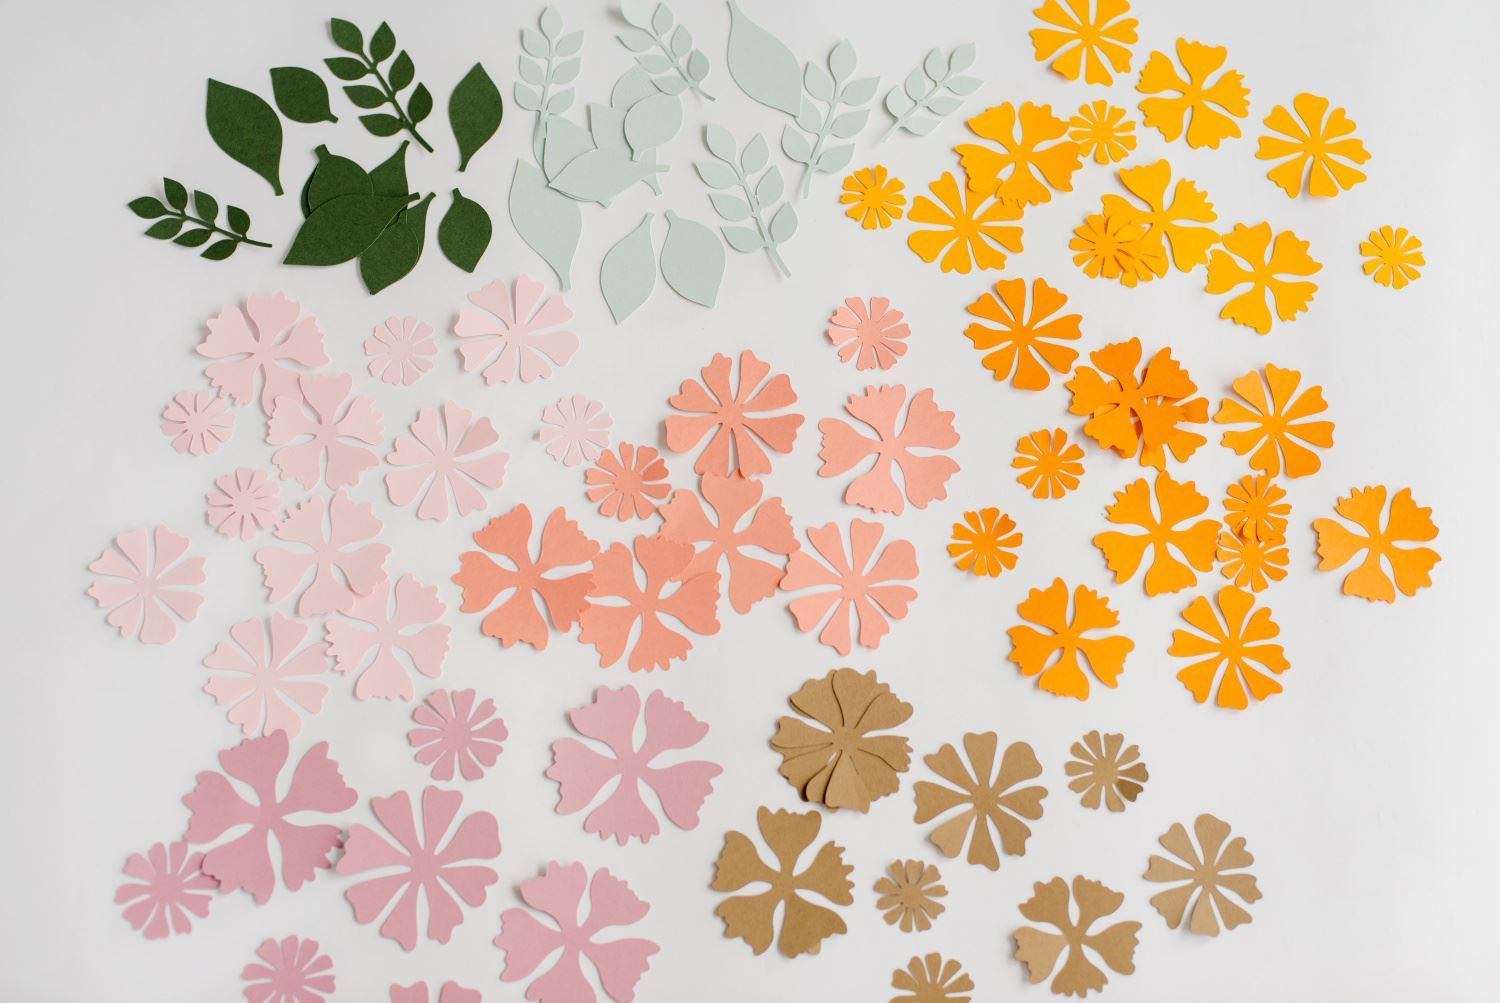 Cut out flower and leaf shapes